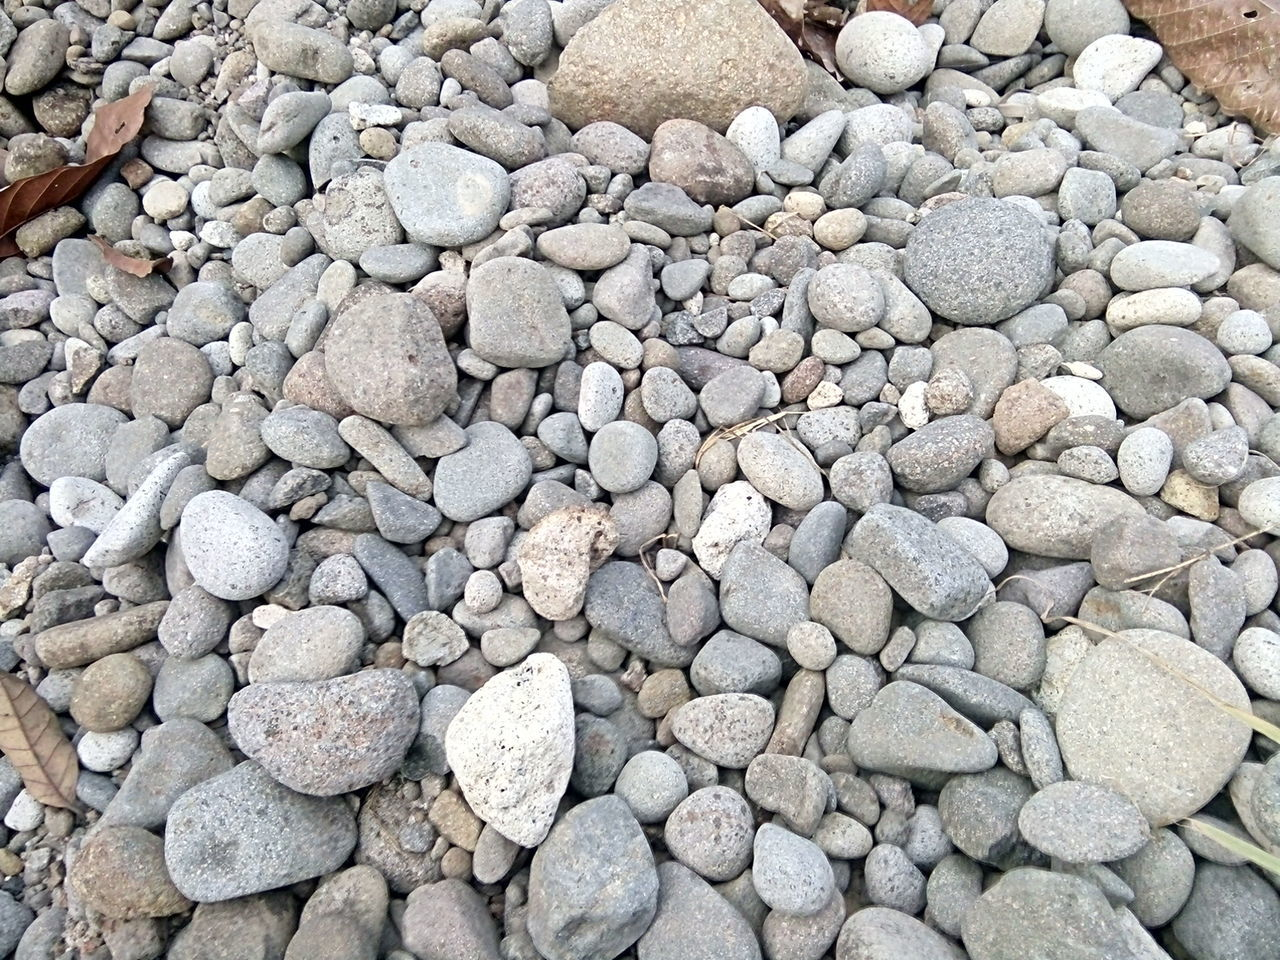 pebble, pebble beach, beach, stone - object, large group of objects, full frame, backgrounds, shore, nature, abundance, outdoors, no people, day, close-up